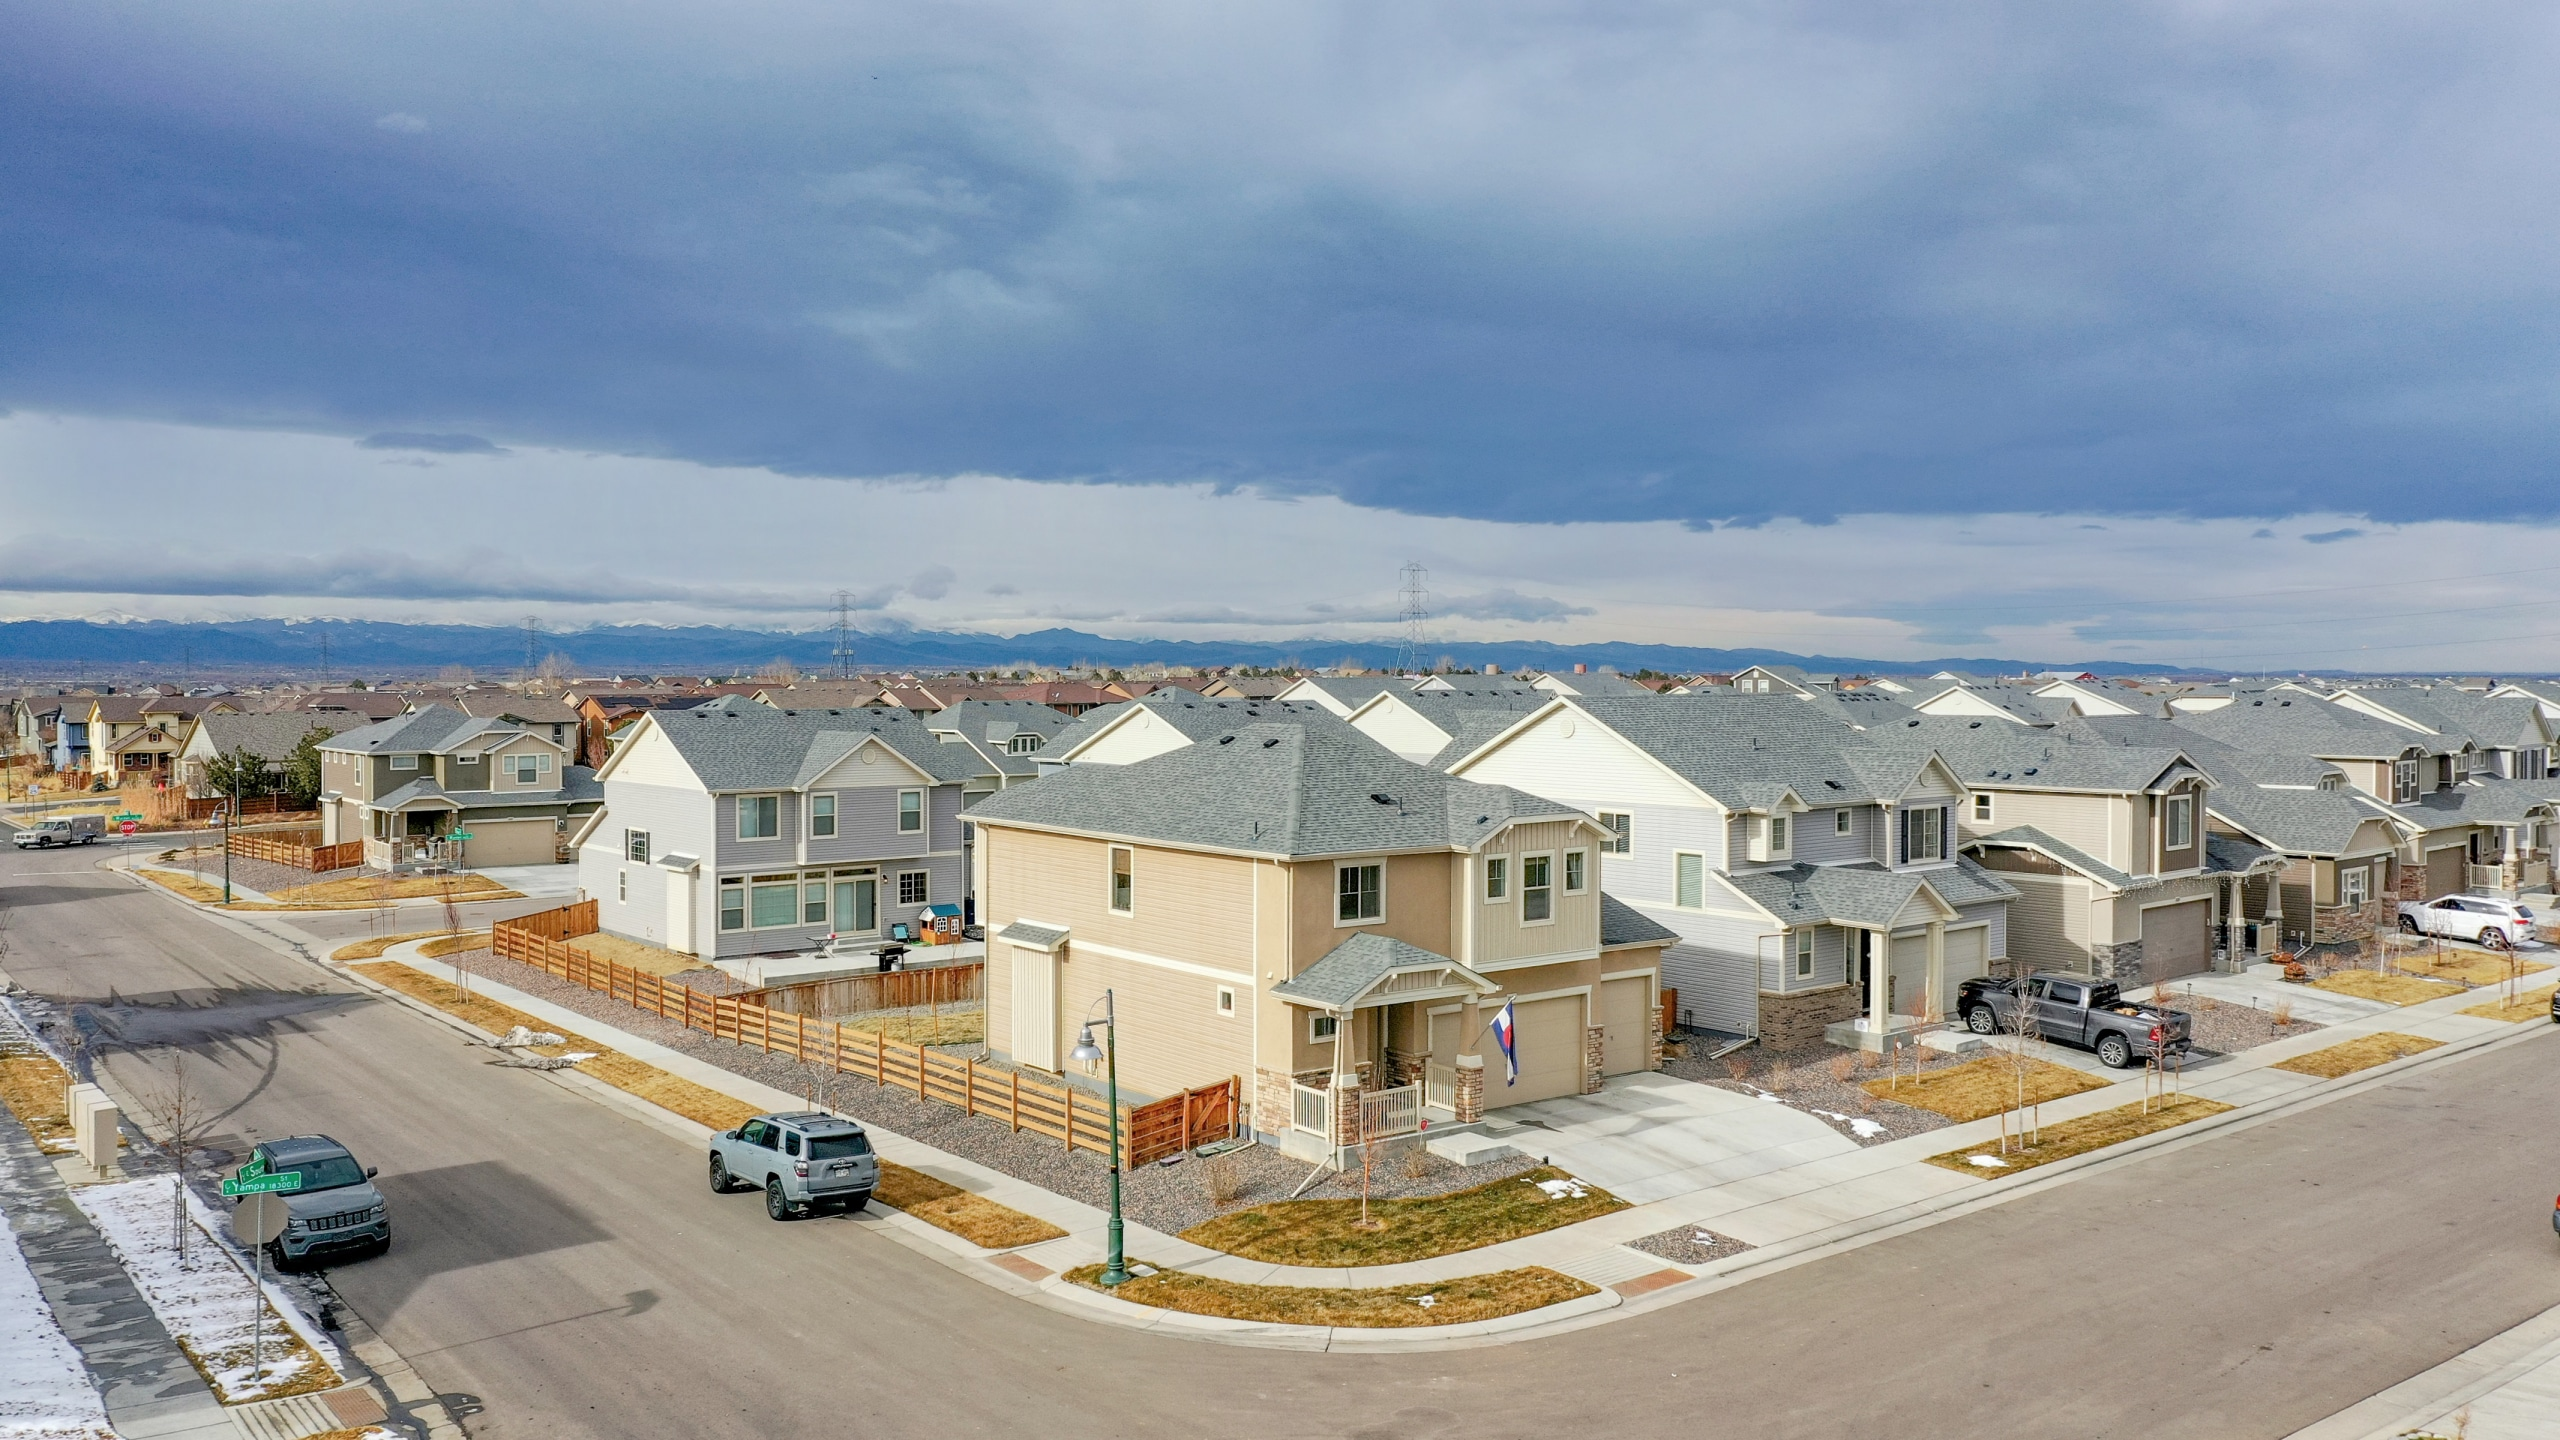 Commerce City Home For Sale, Drone Shot of Beige House